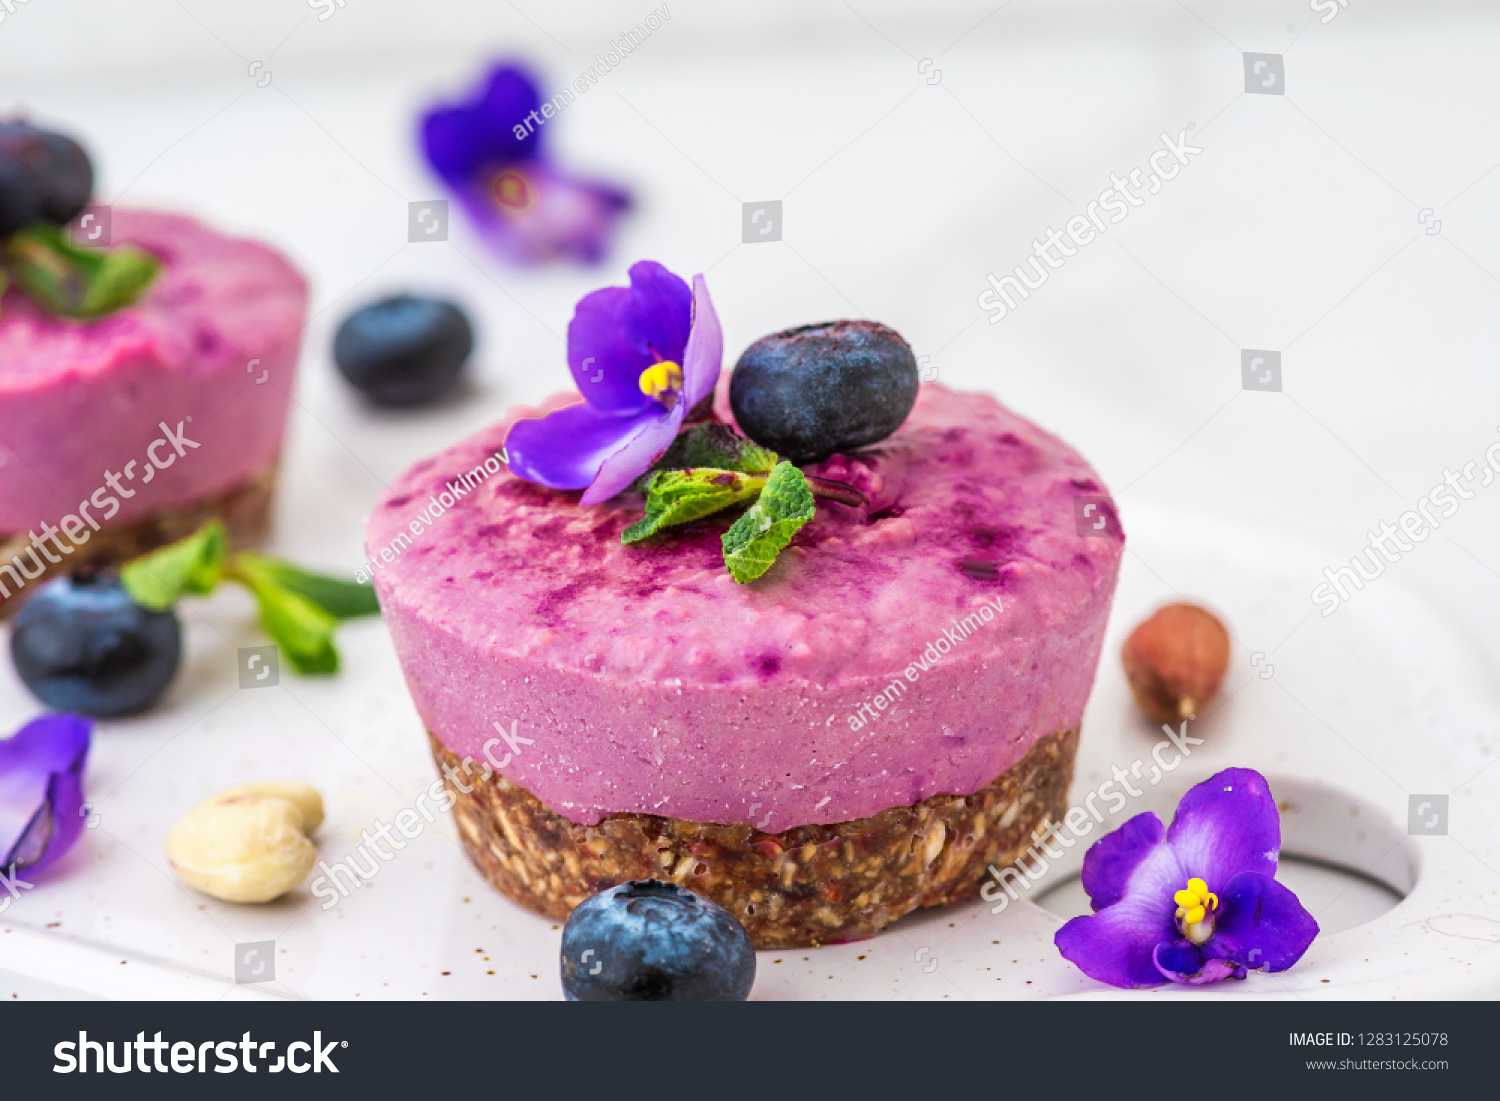 blueberry and acai vegan cashew cakes with fresh berries, edible flowers, mint, nuts. healthy vegan food concept. close up #1283125078